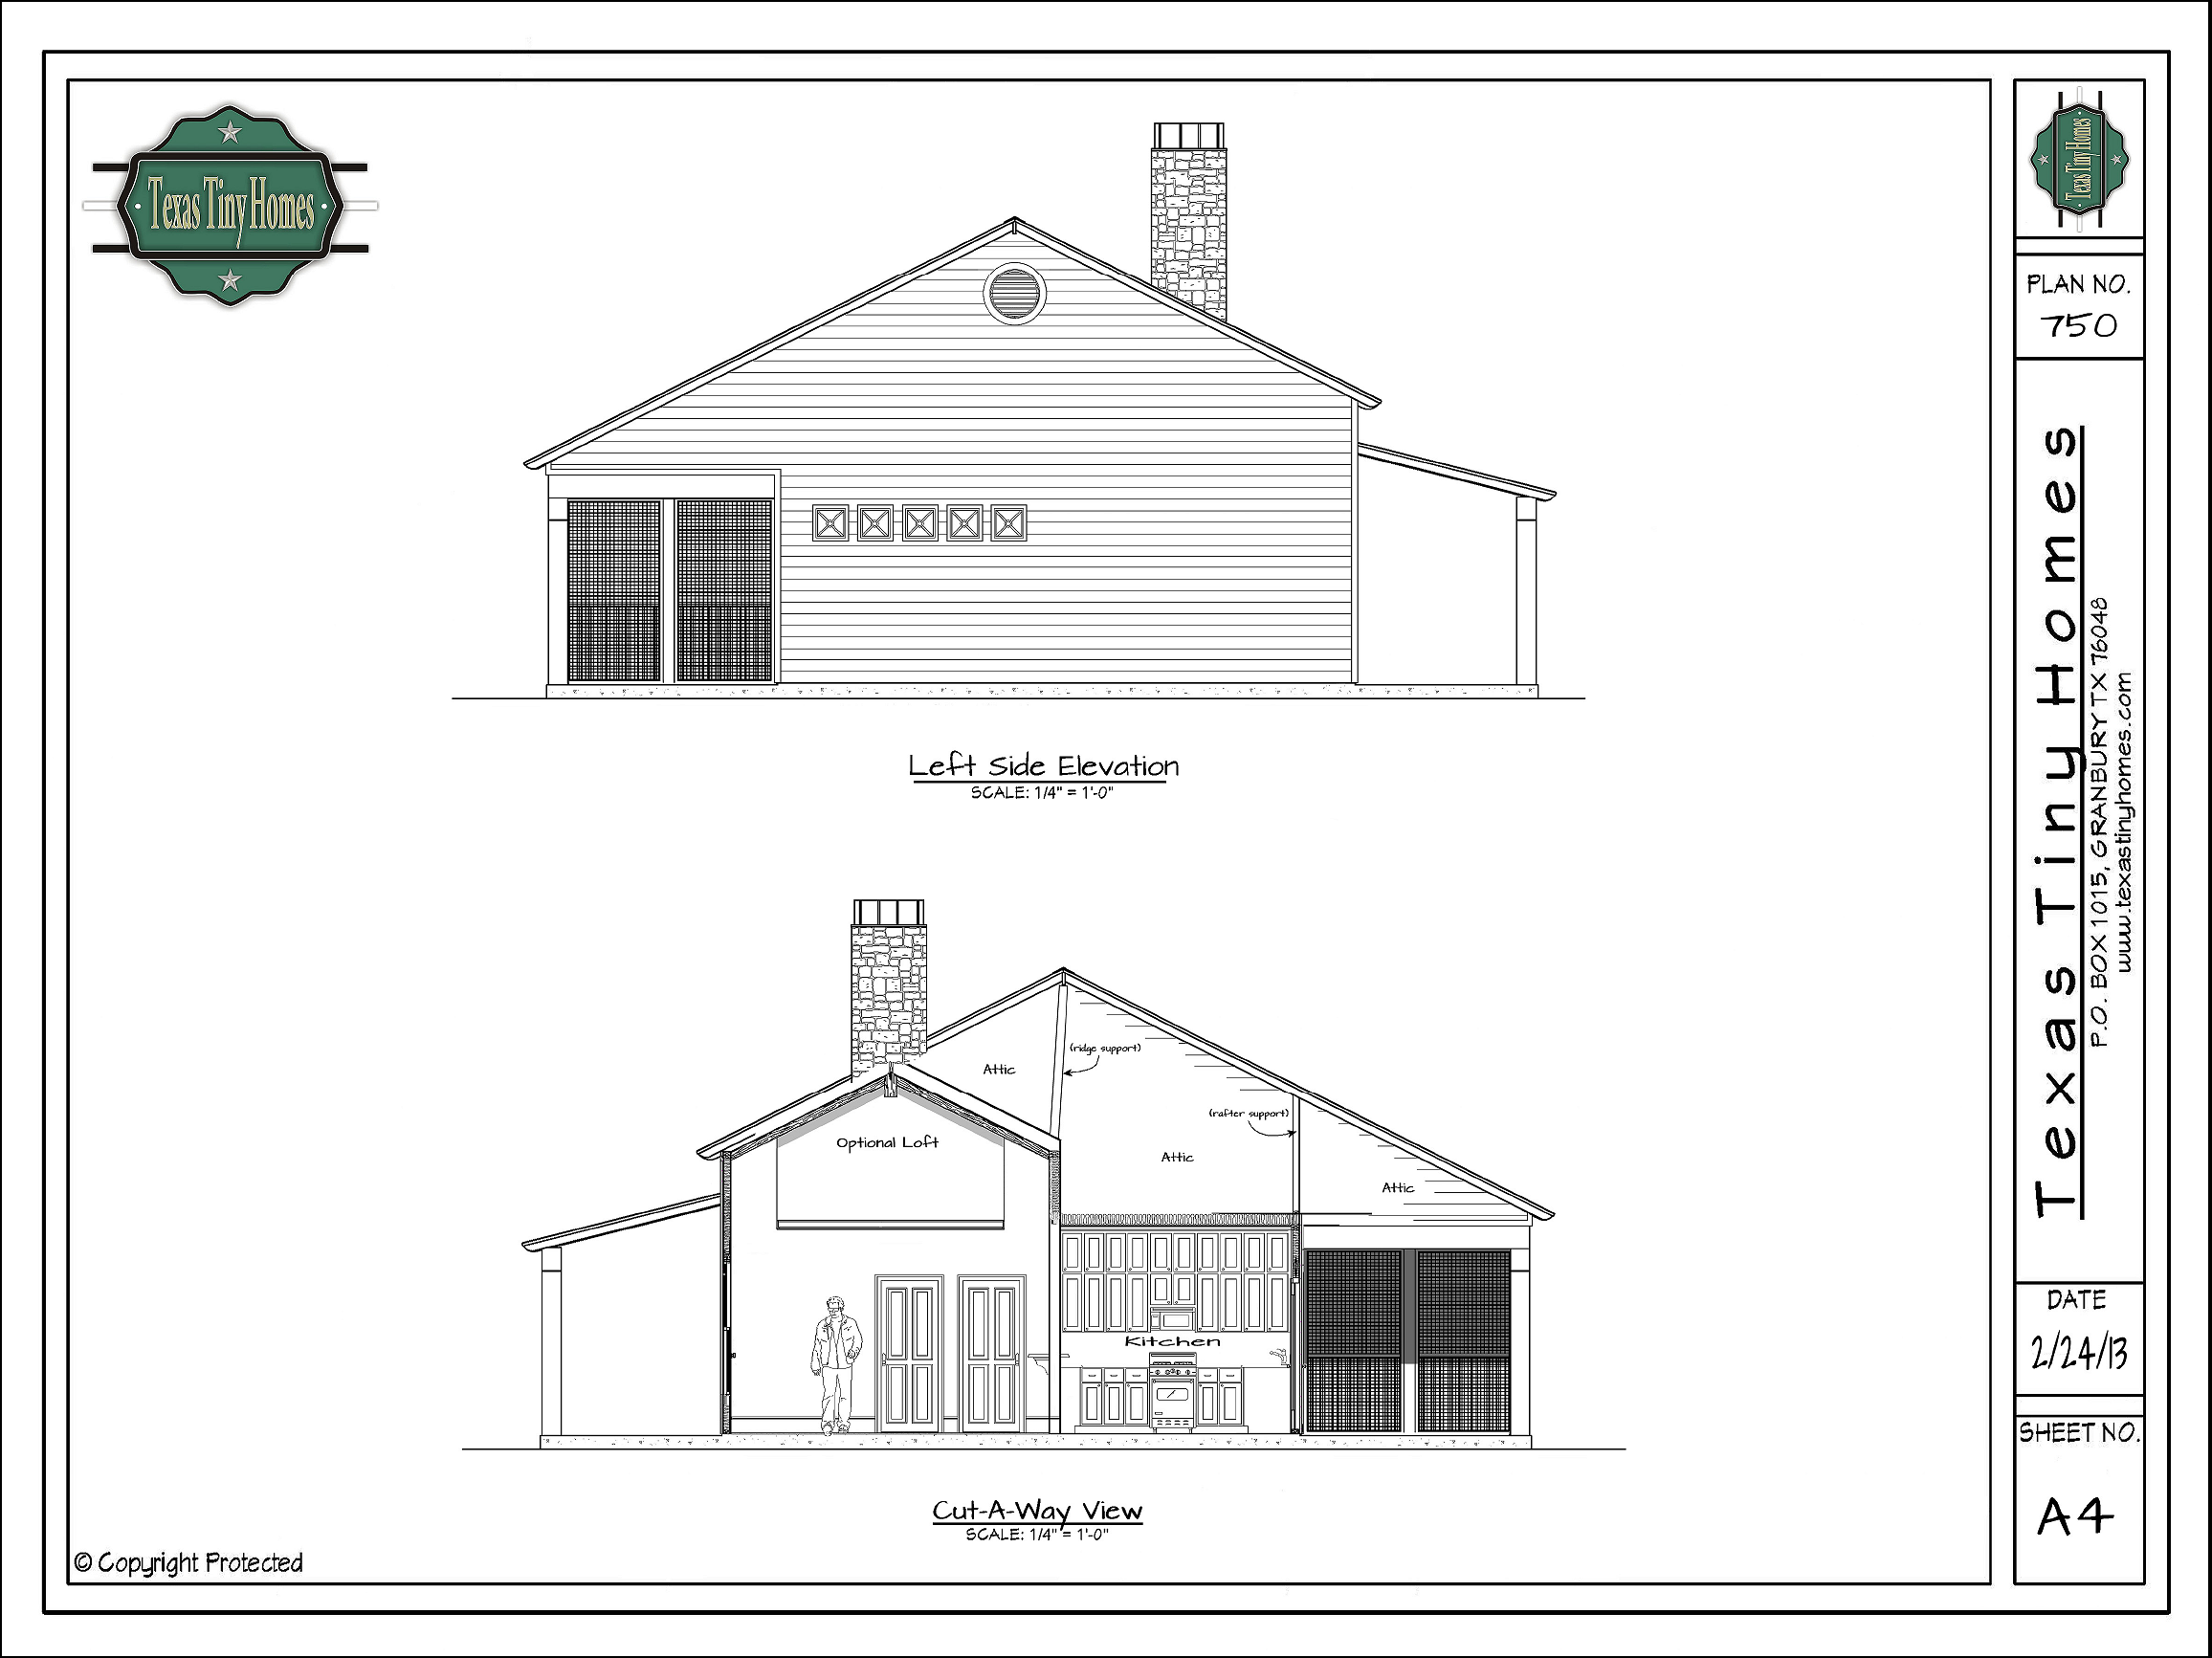 Texas Tiny Homes | Plan 750